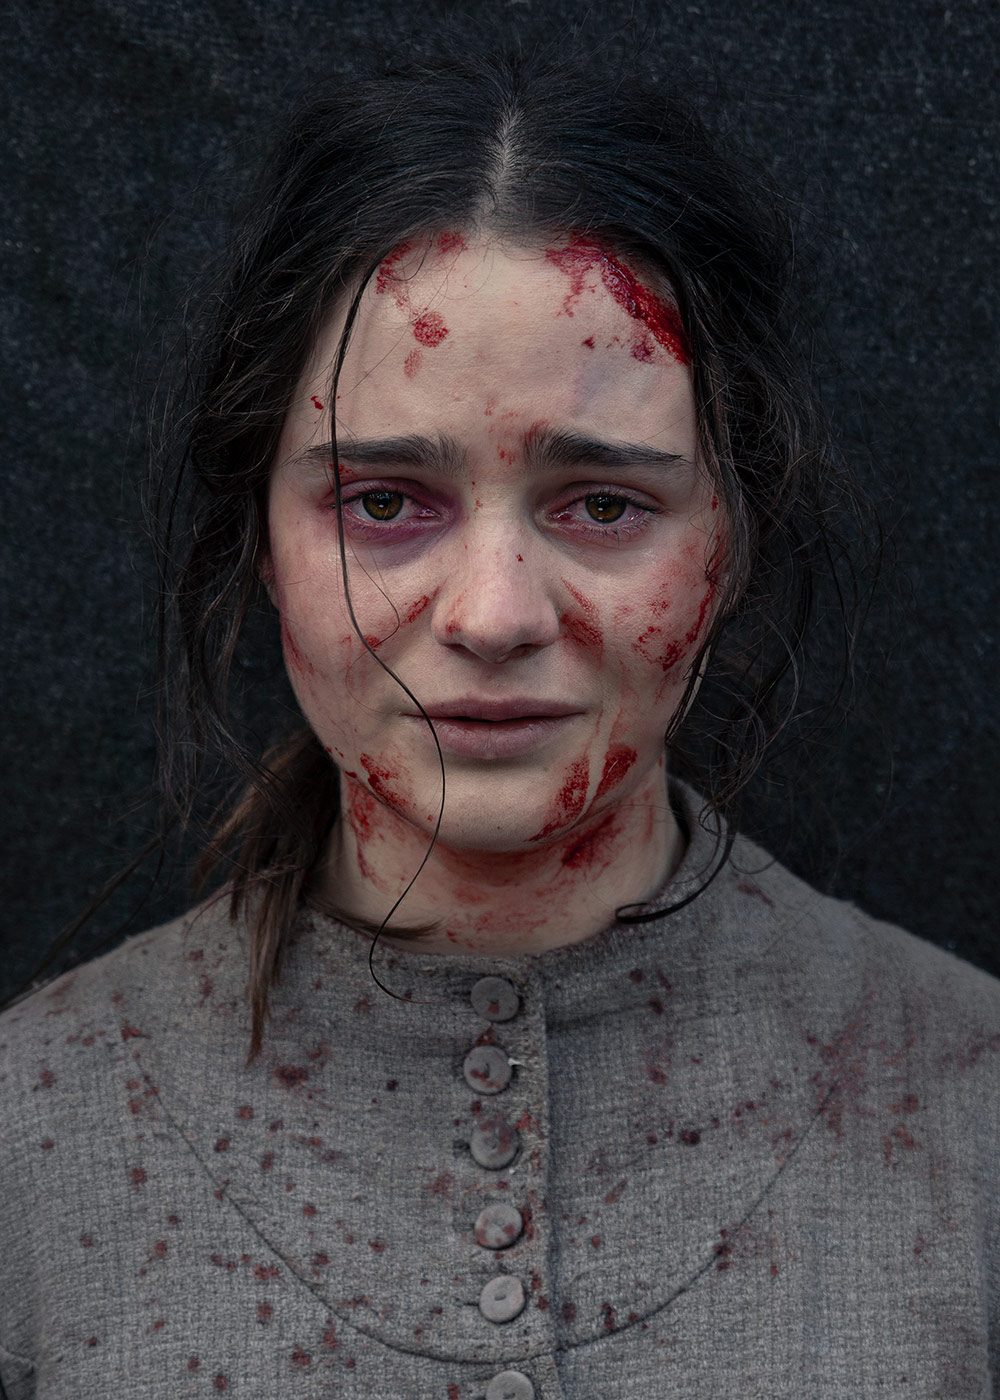 Dubliner Aisling Franciosi stars in the chilling convict-era movie The Nightingale.